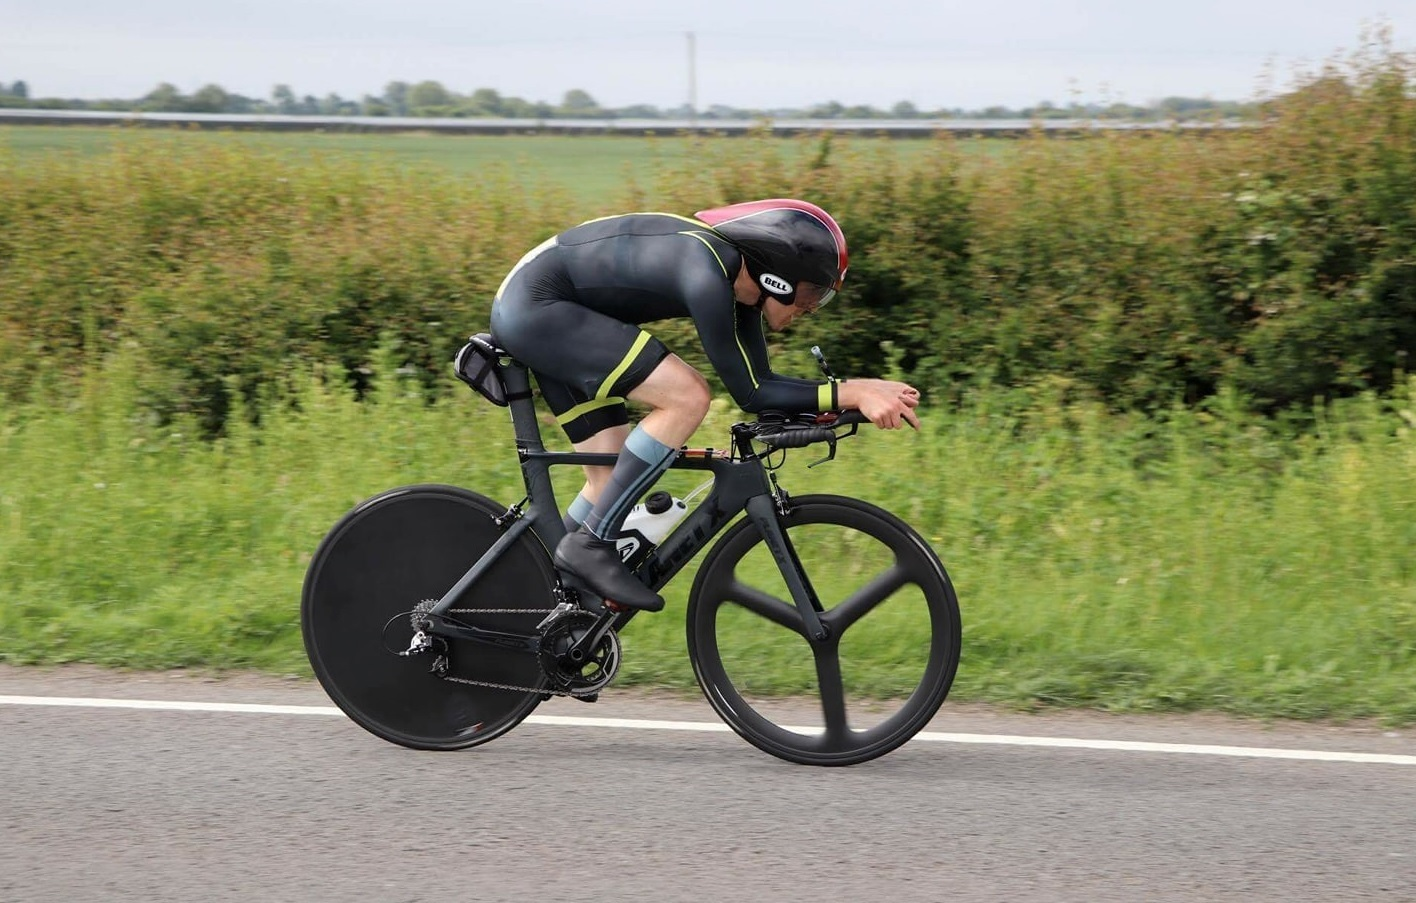 RIDING HIGH: Didcot-based Richard Gildea came third in the National 12-hour Time Trial Championship